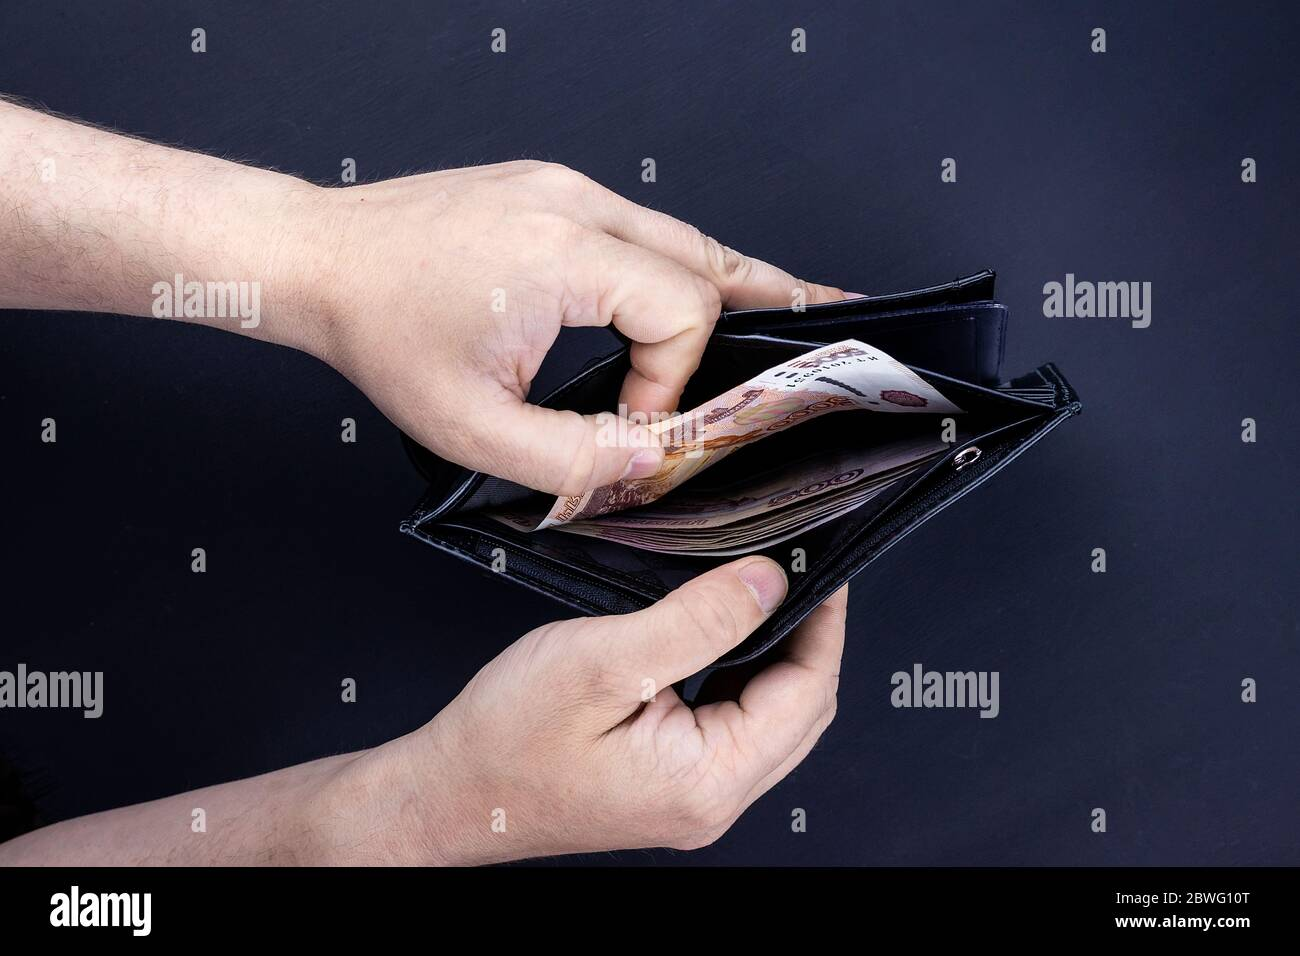 A man is holding an open wallet with money in his hands. Hands take out bills from his wallet. The concept of rejection of paper money, inflation, fin Stock Photo